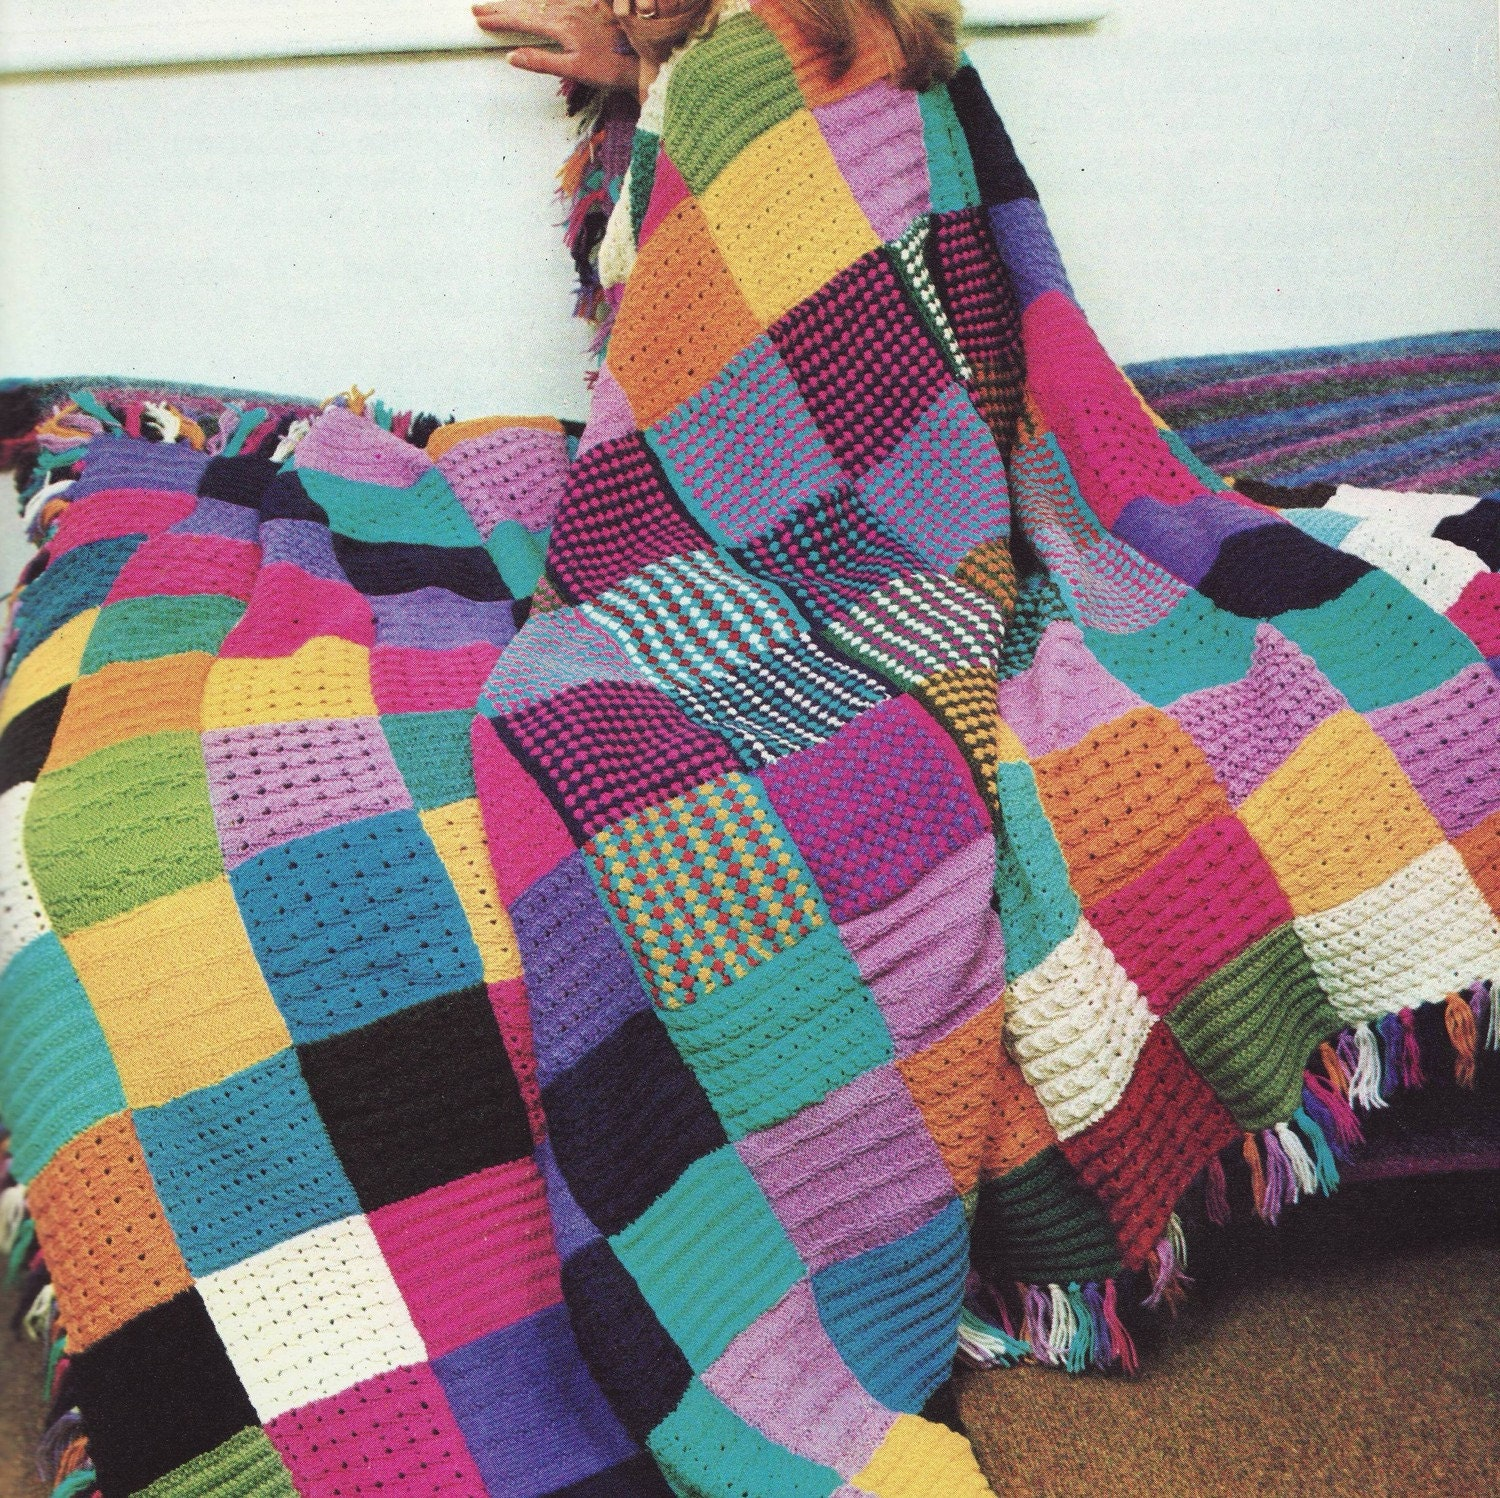 Knitting Patchwork Quilt Patterns : Instant download pdf knitting pattern for squares patchwork